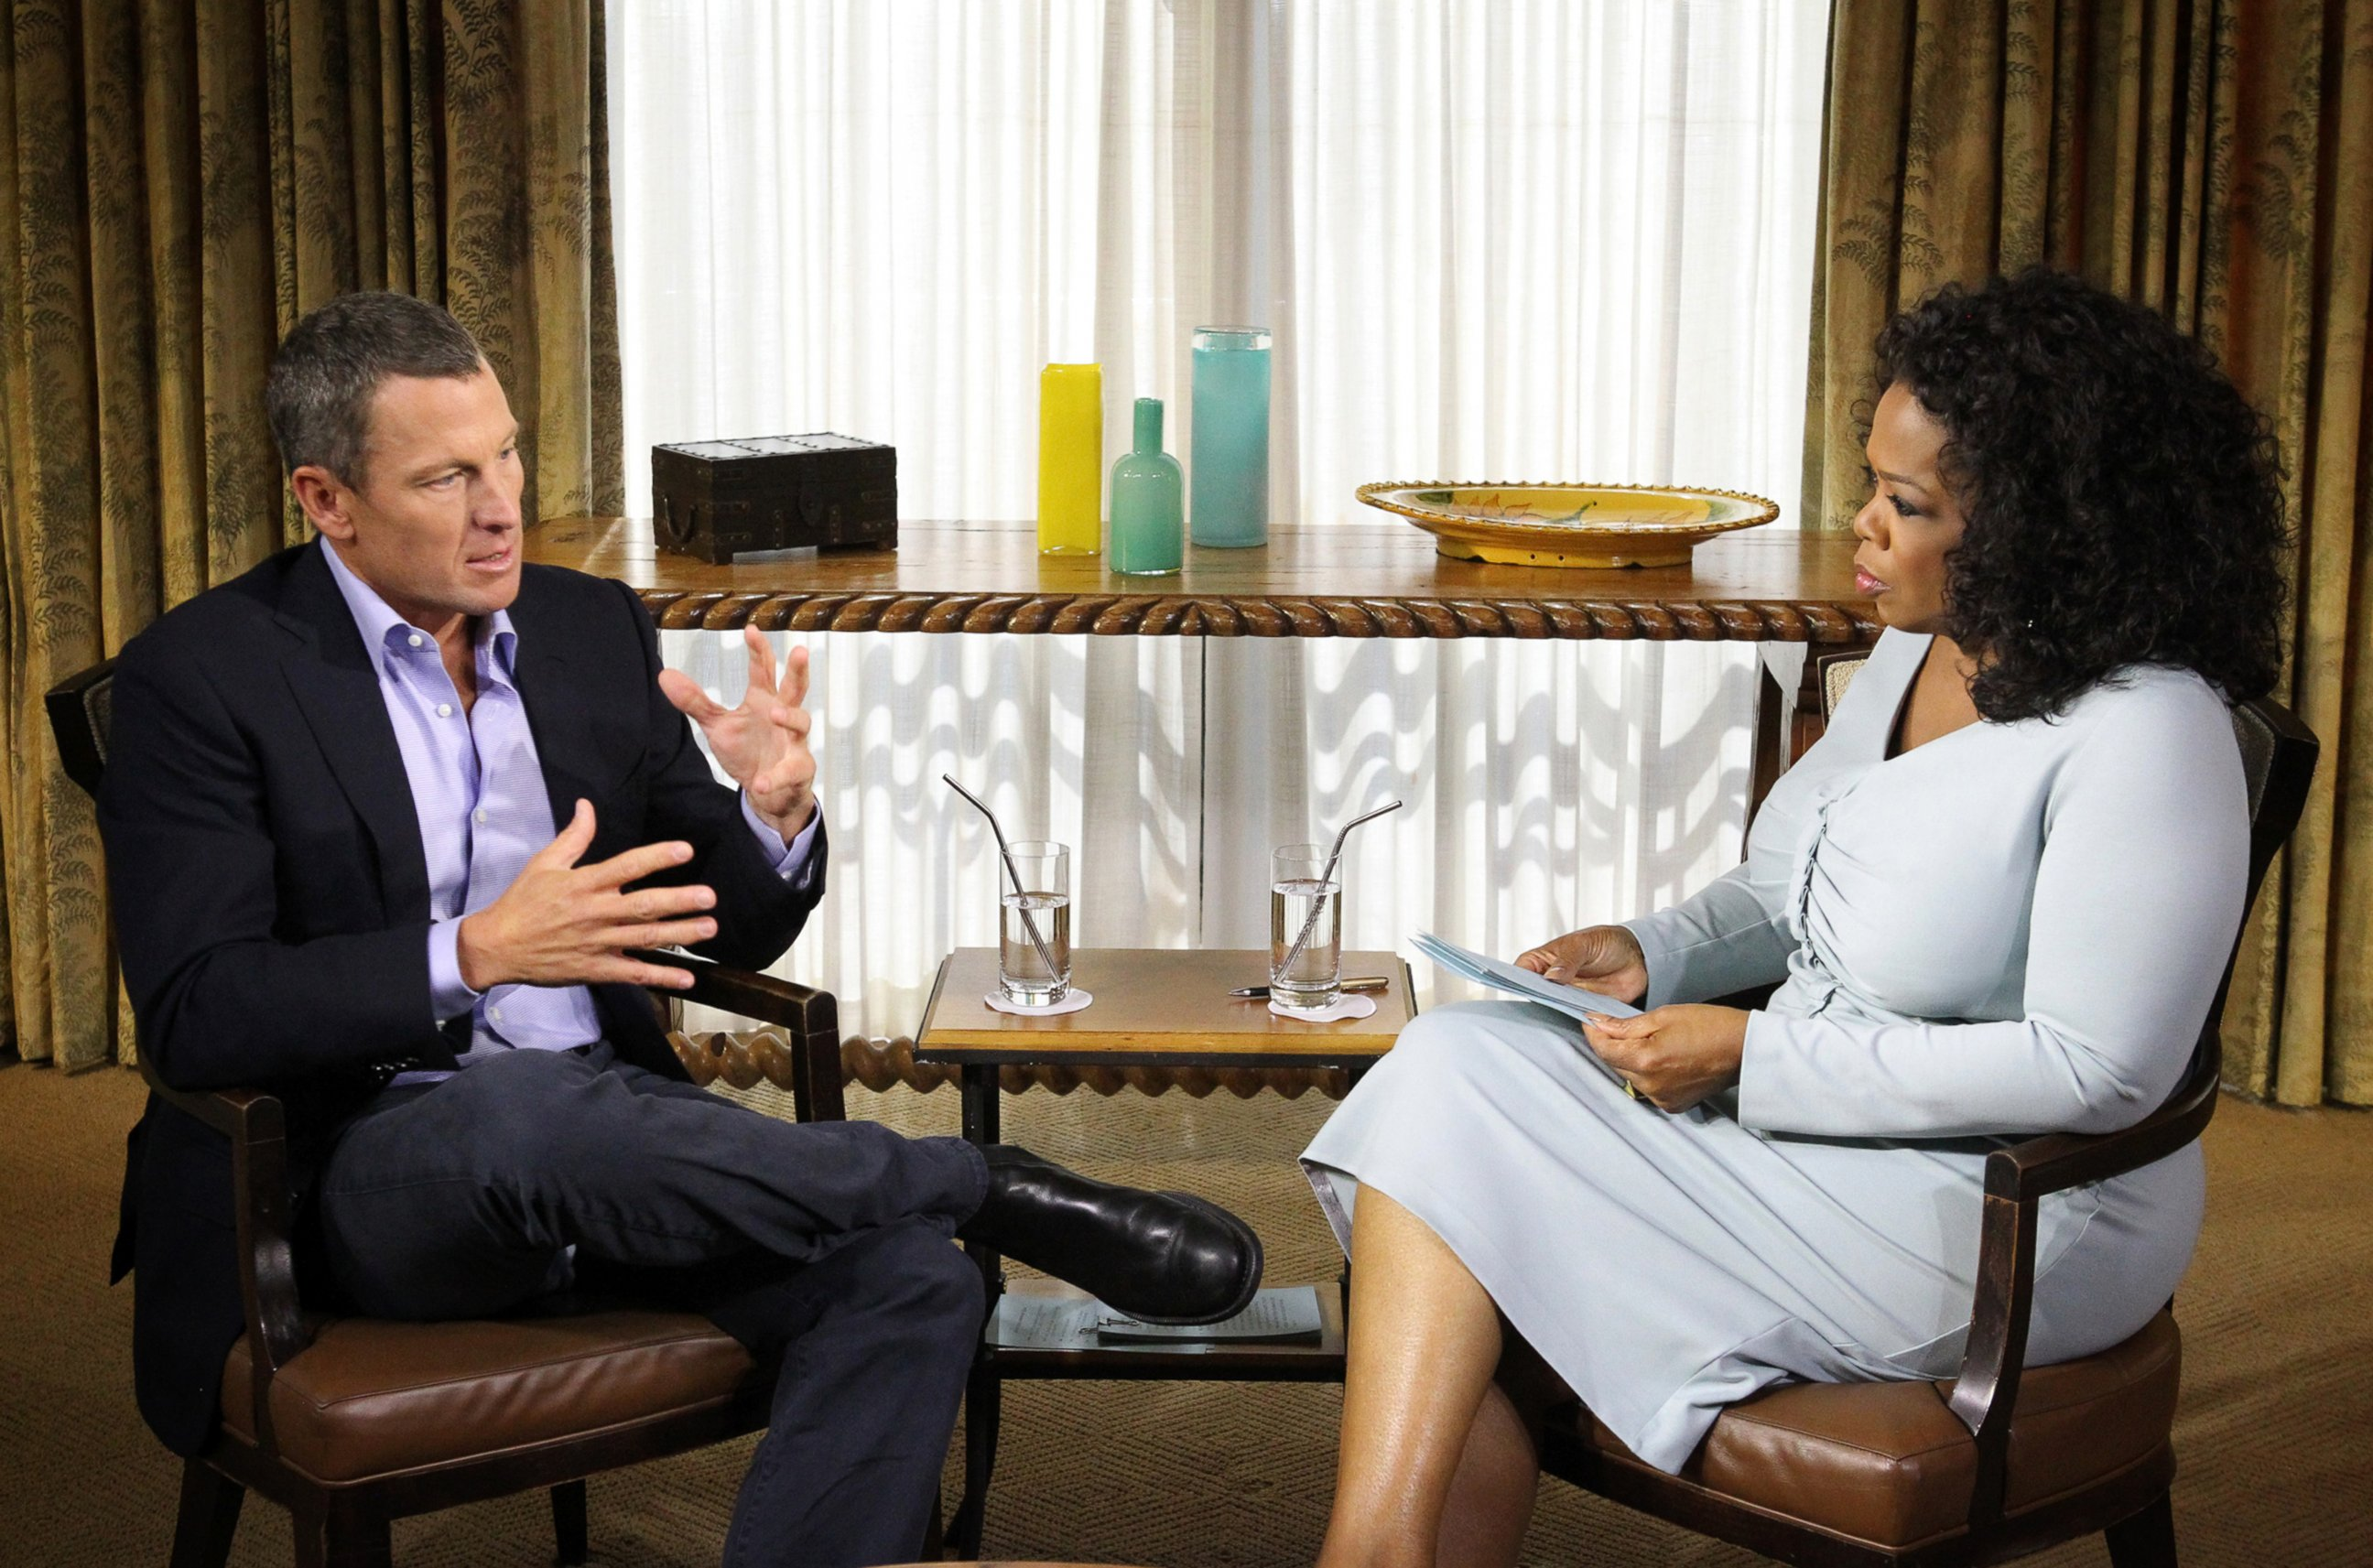 2013: Lance Armstrong was stripped off all of his Tour de France victories. Seven titles were gone because of doping. Here you can see him during an infamous interview with Oprah Winfrey.